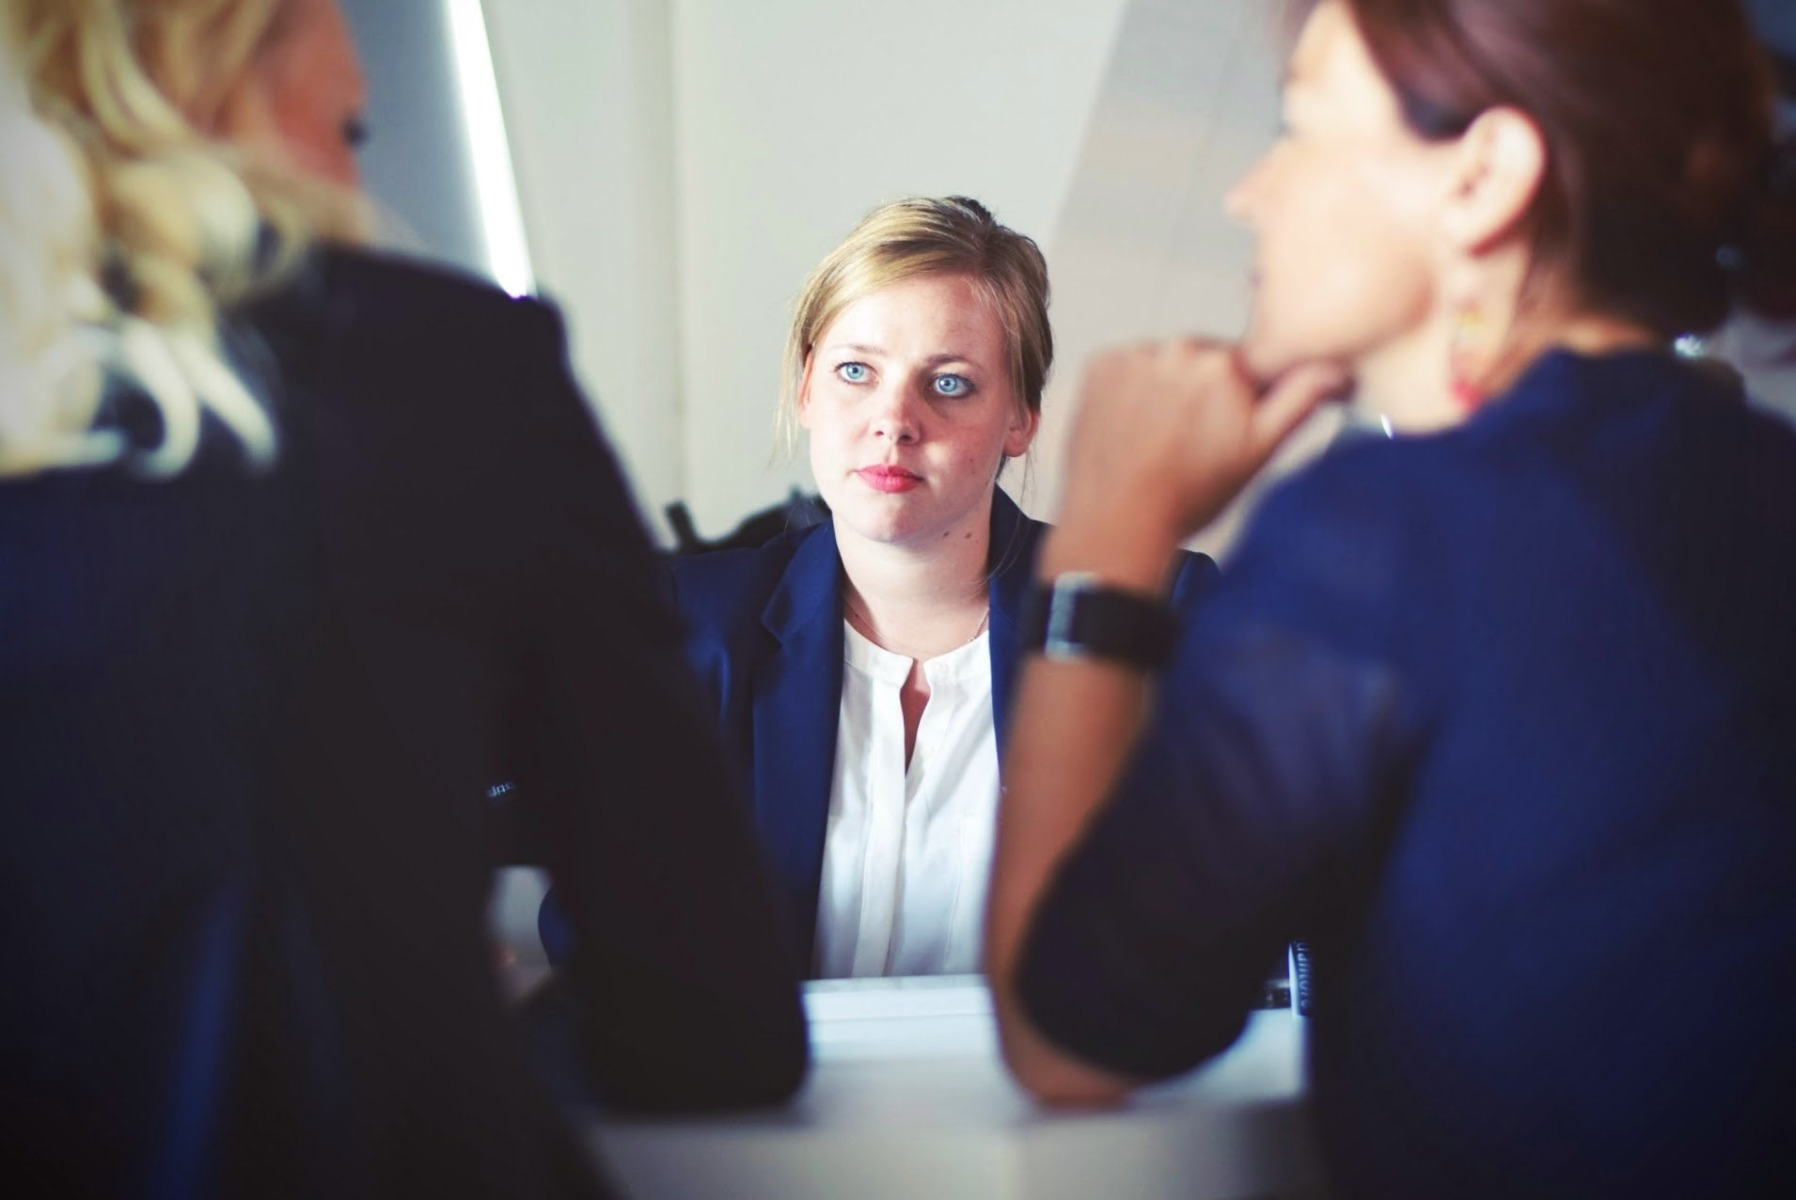 A woman in an interview